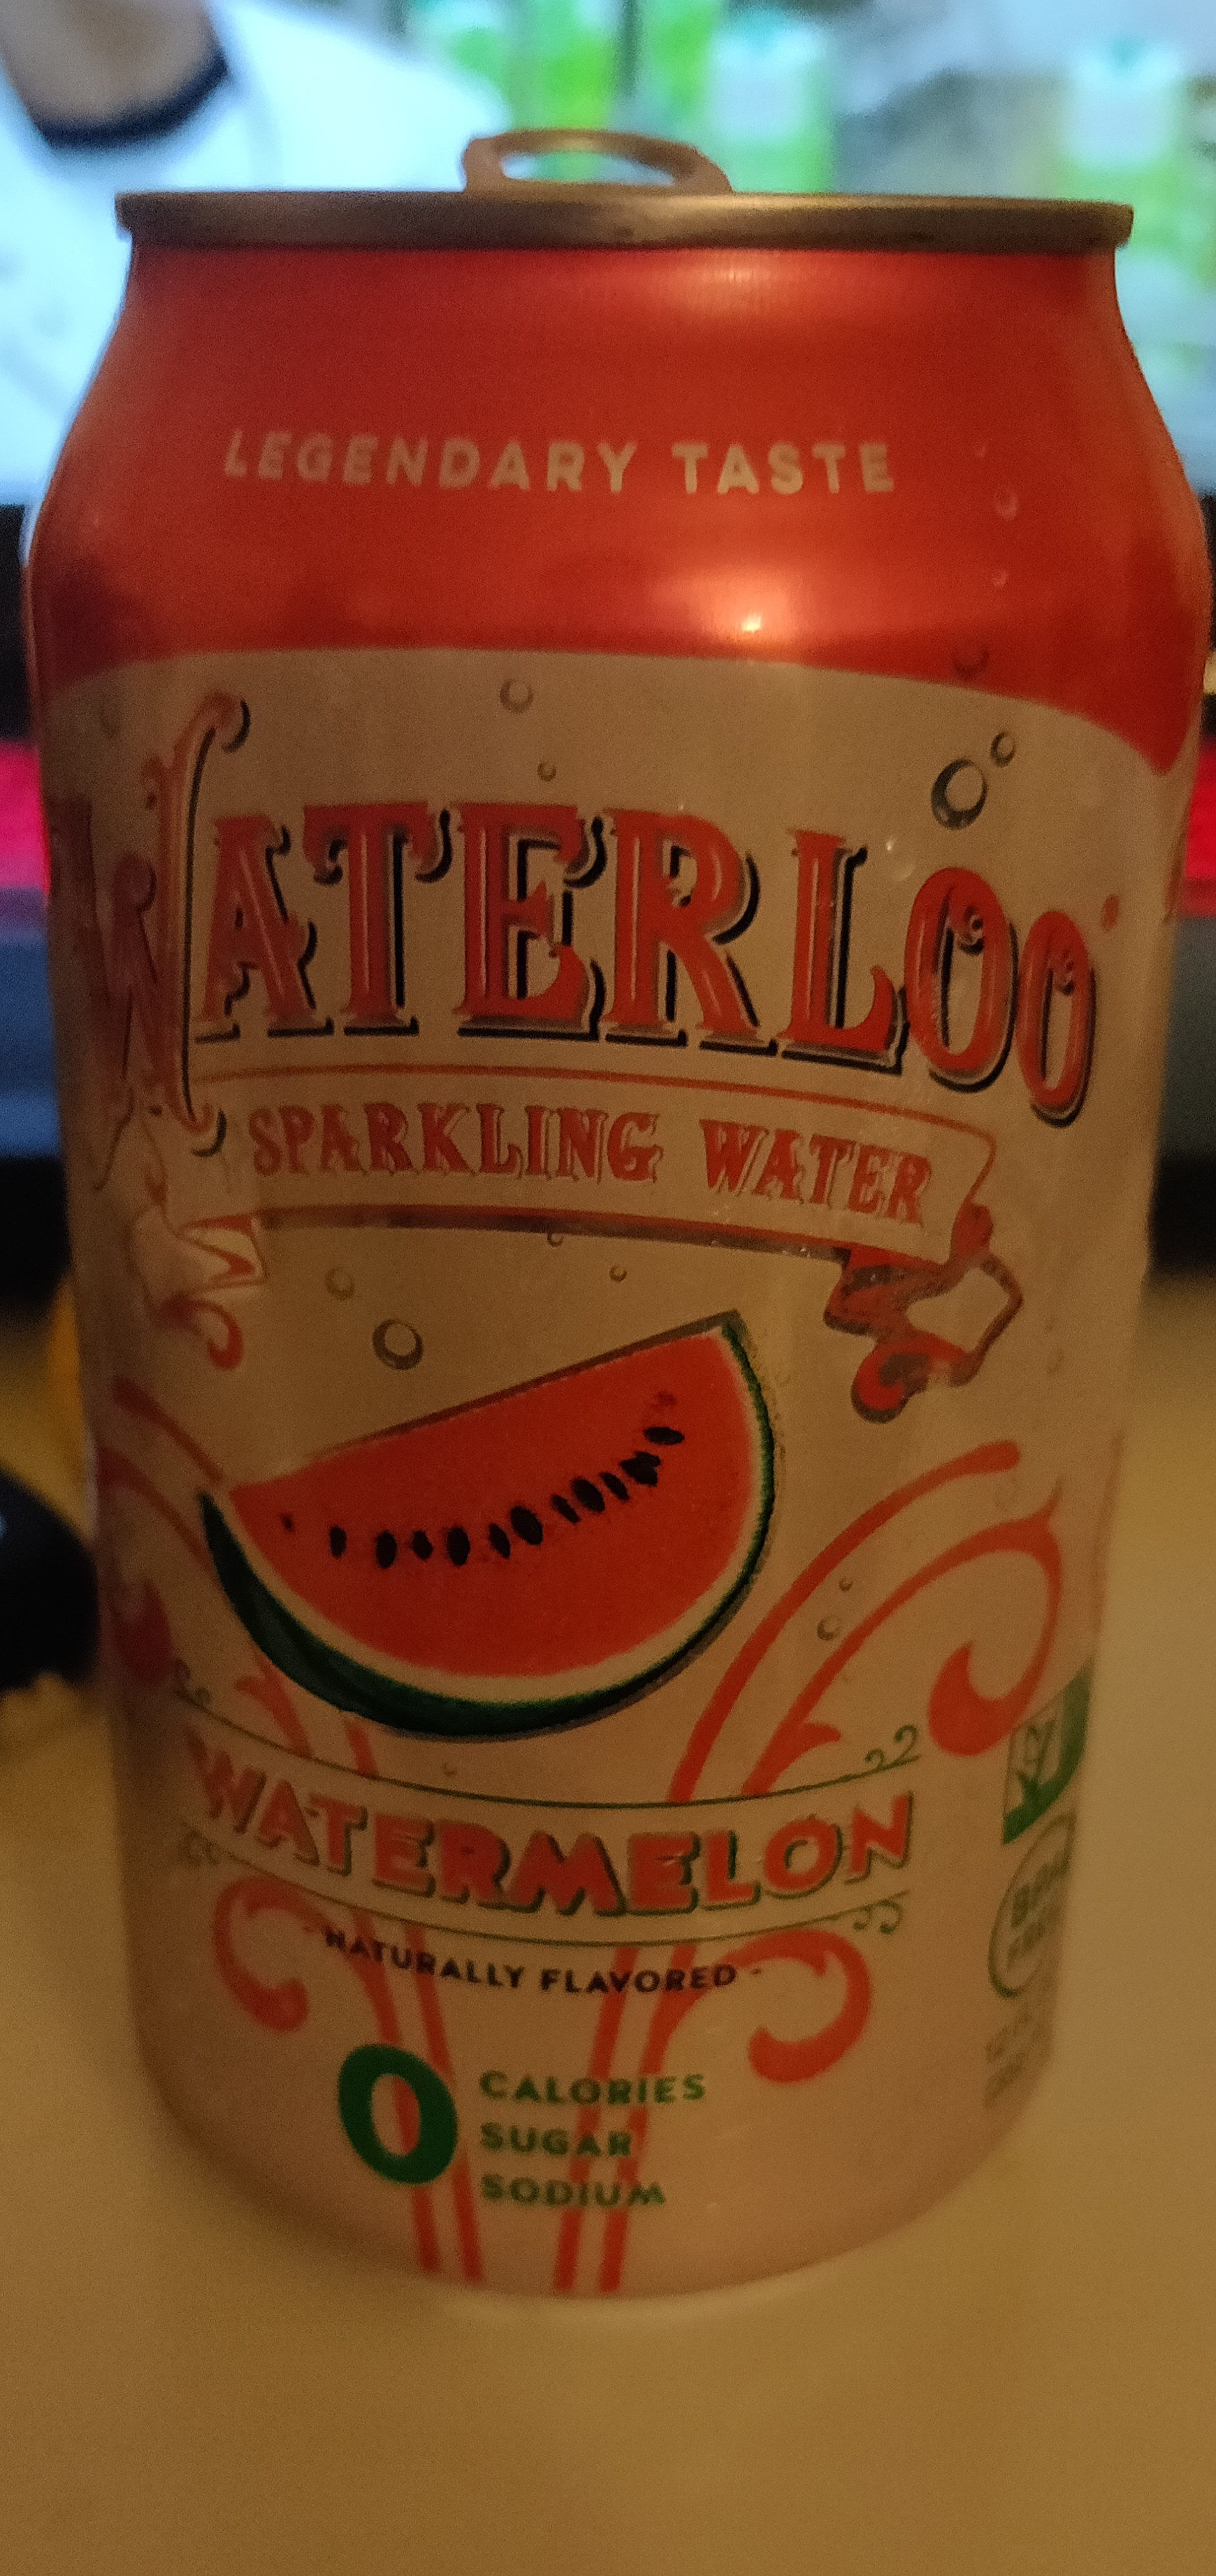 Waterloo Sparkling Water Watermelon - Product